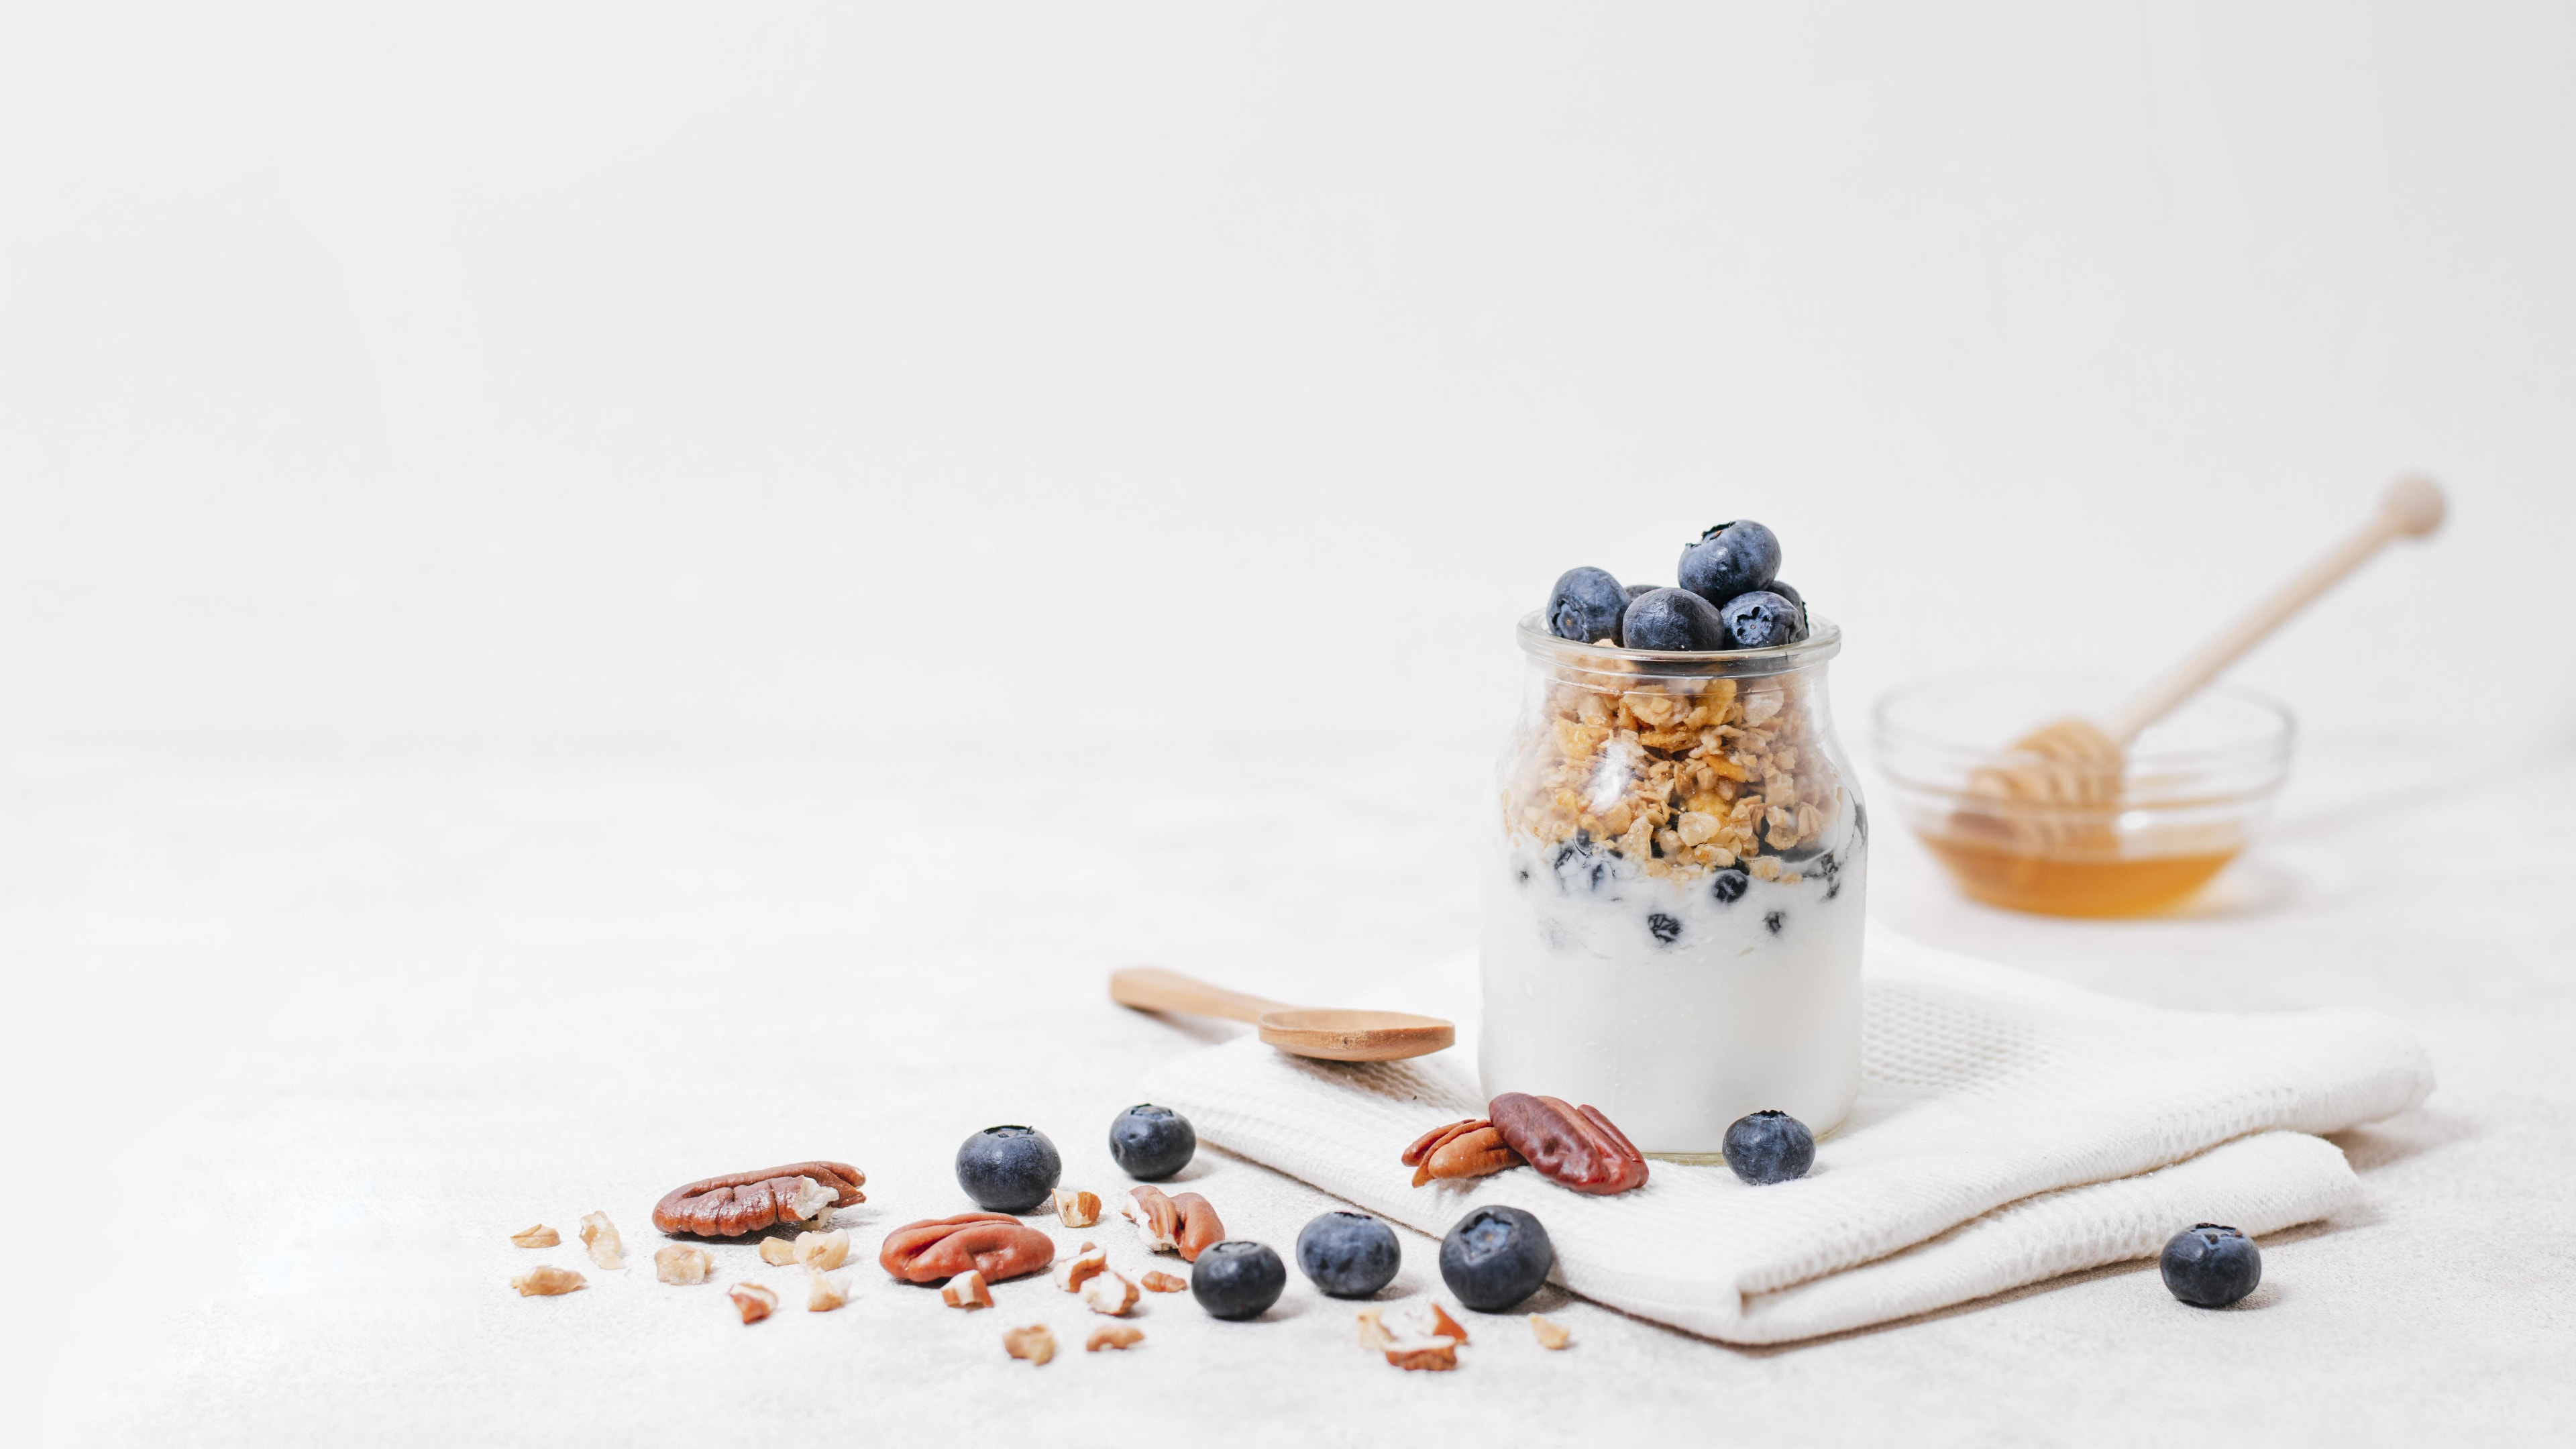 Jar filled with yogurt, granola and blueberries